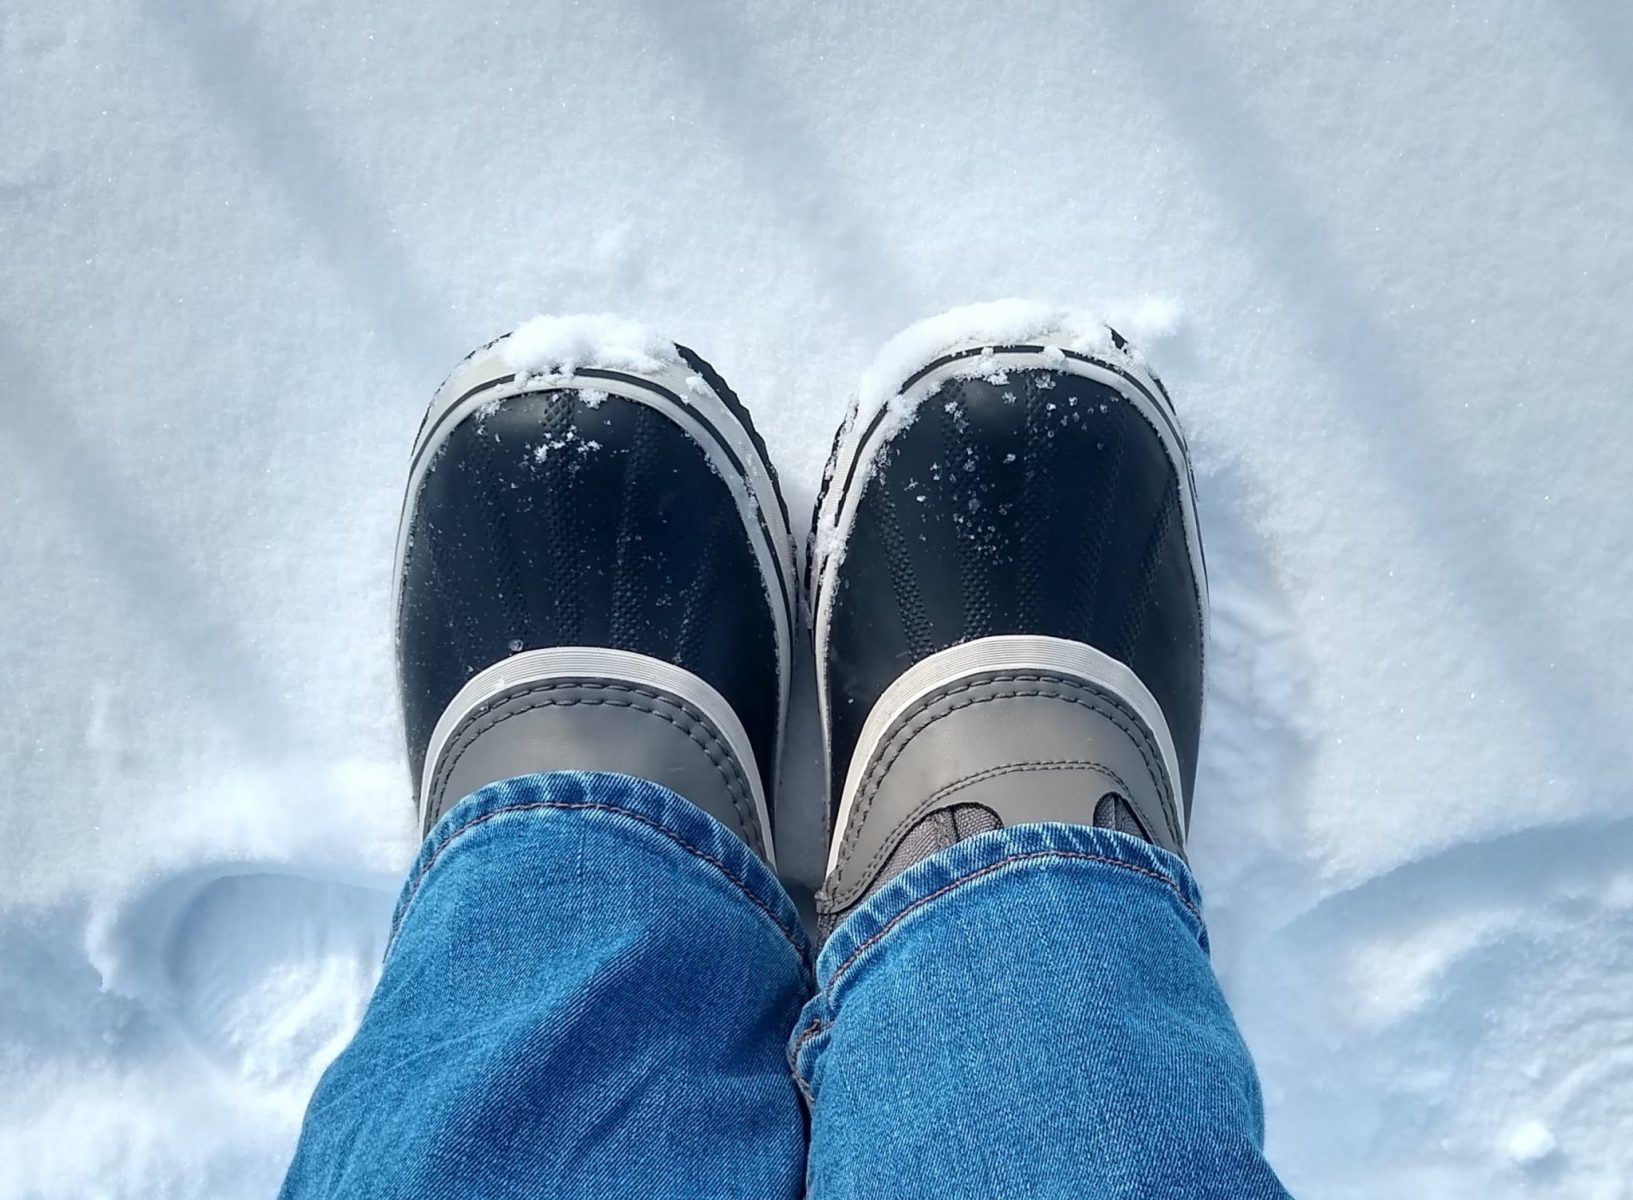 a person's lower legs wearing jeans and rubber snowboots standing in the snow